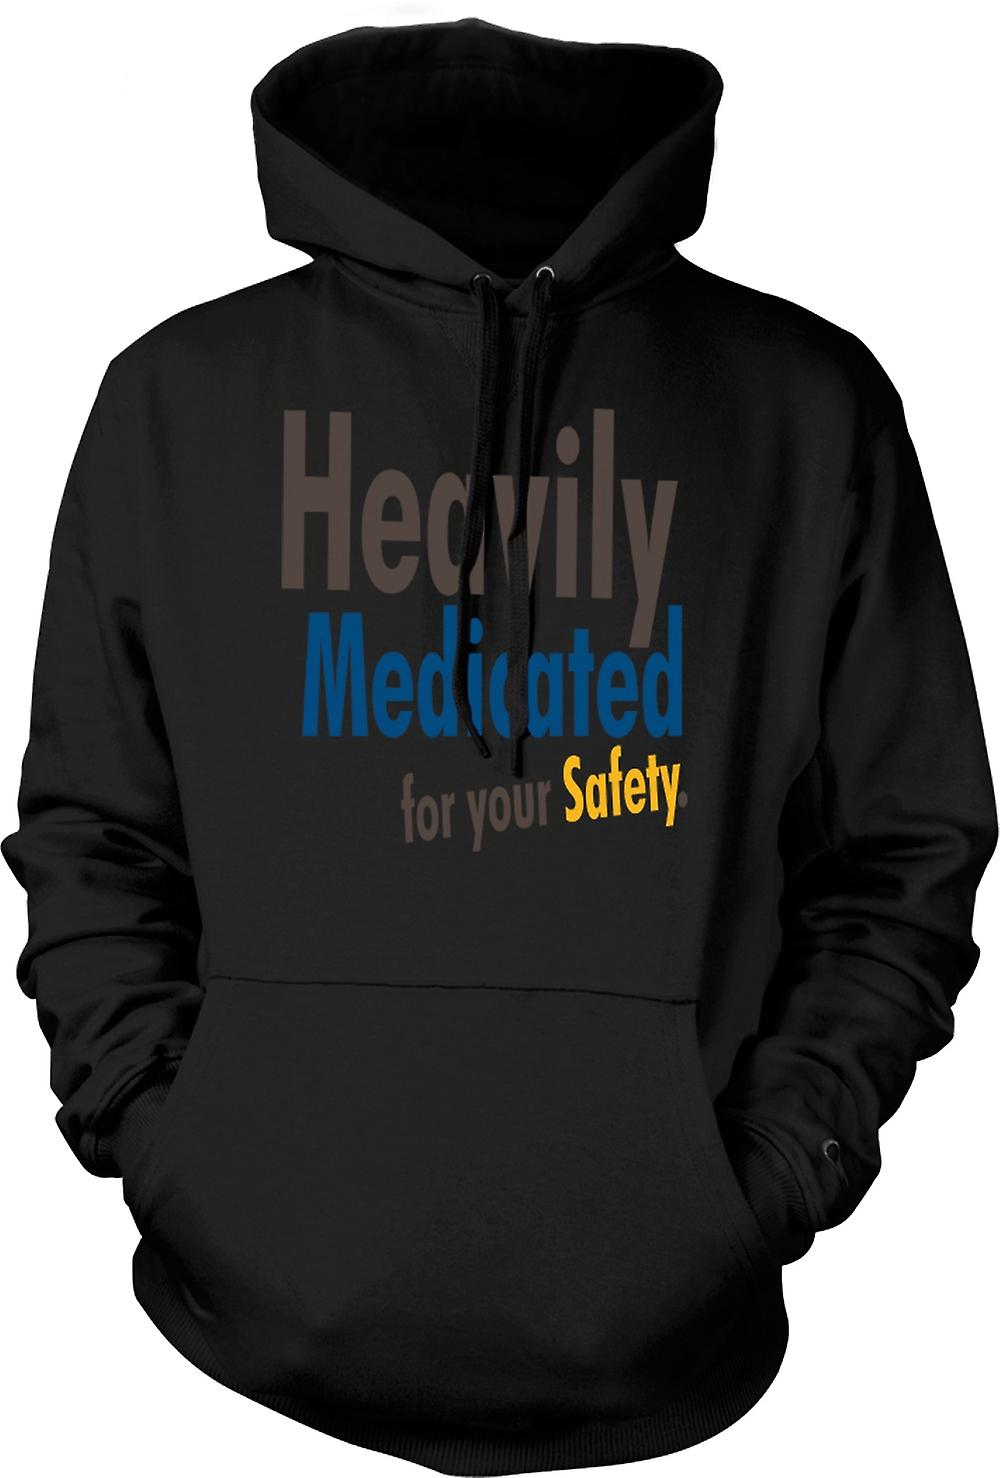 Mens Hoodie - Heavily Medicated For Your Safety - Quote